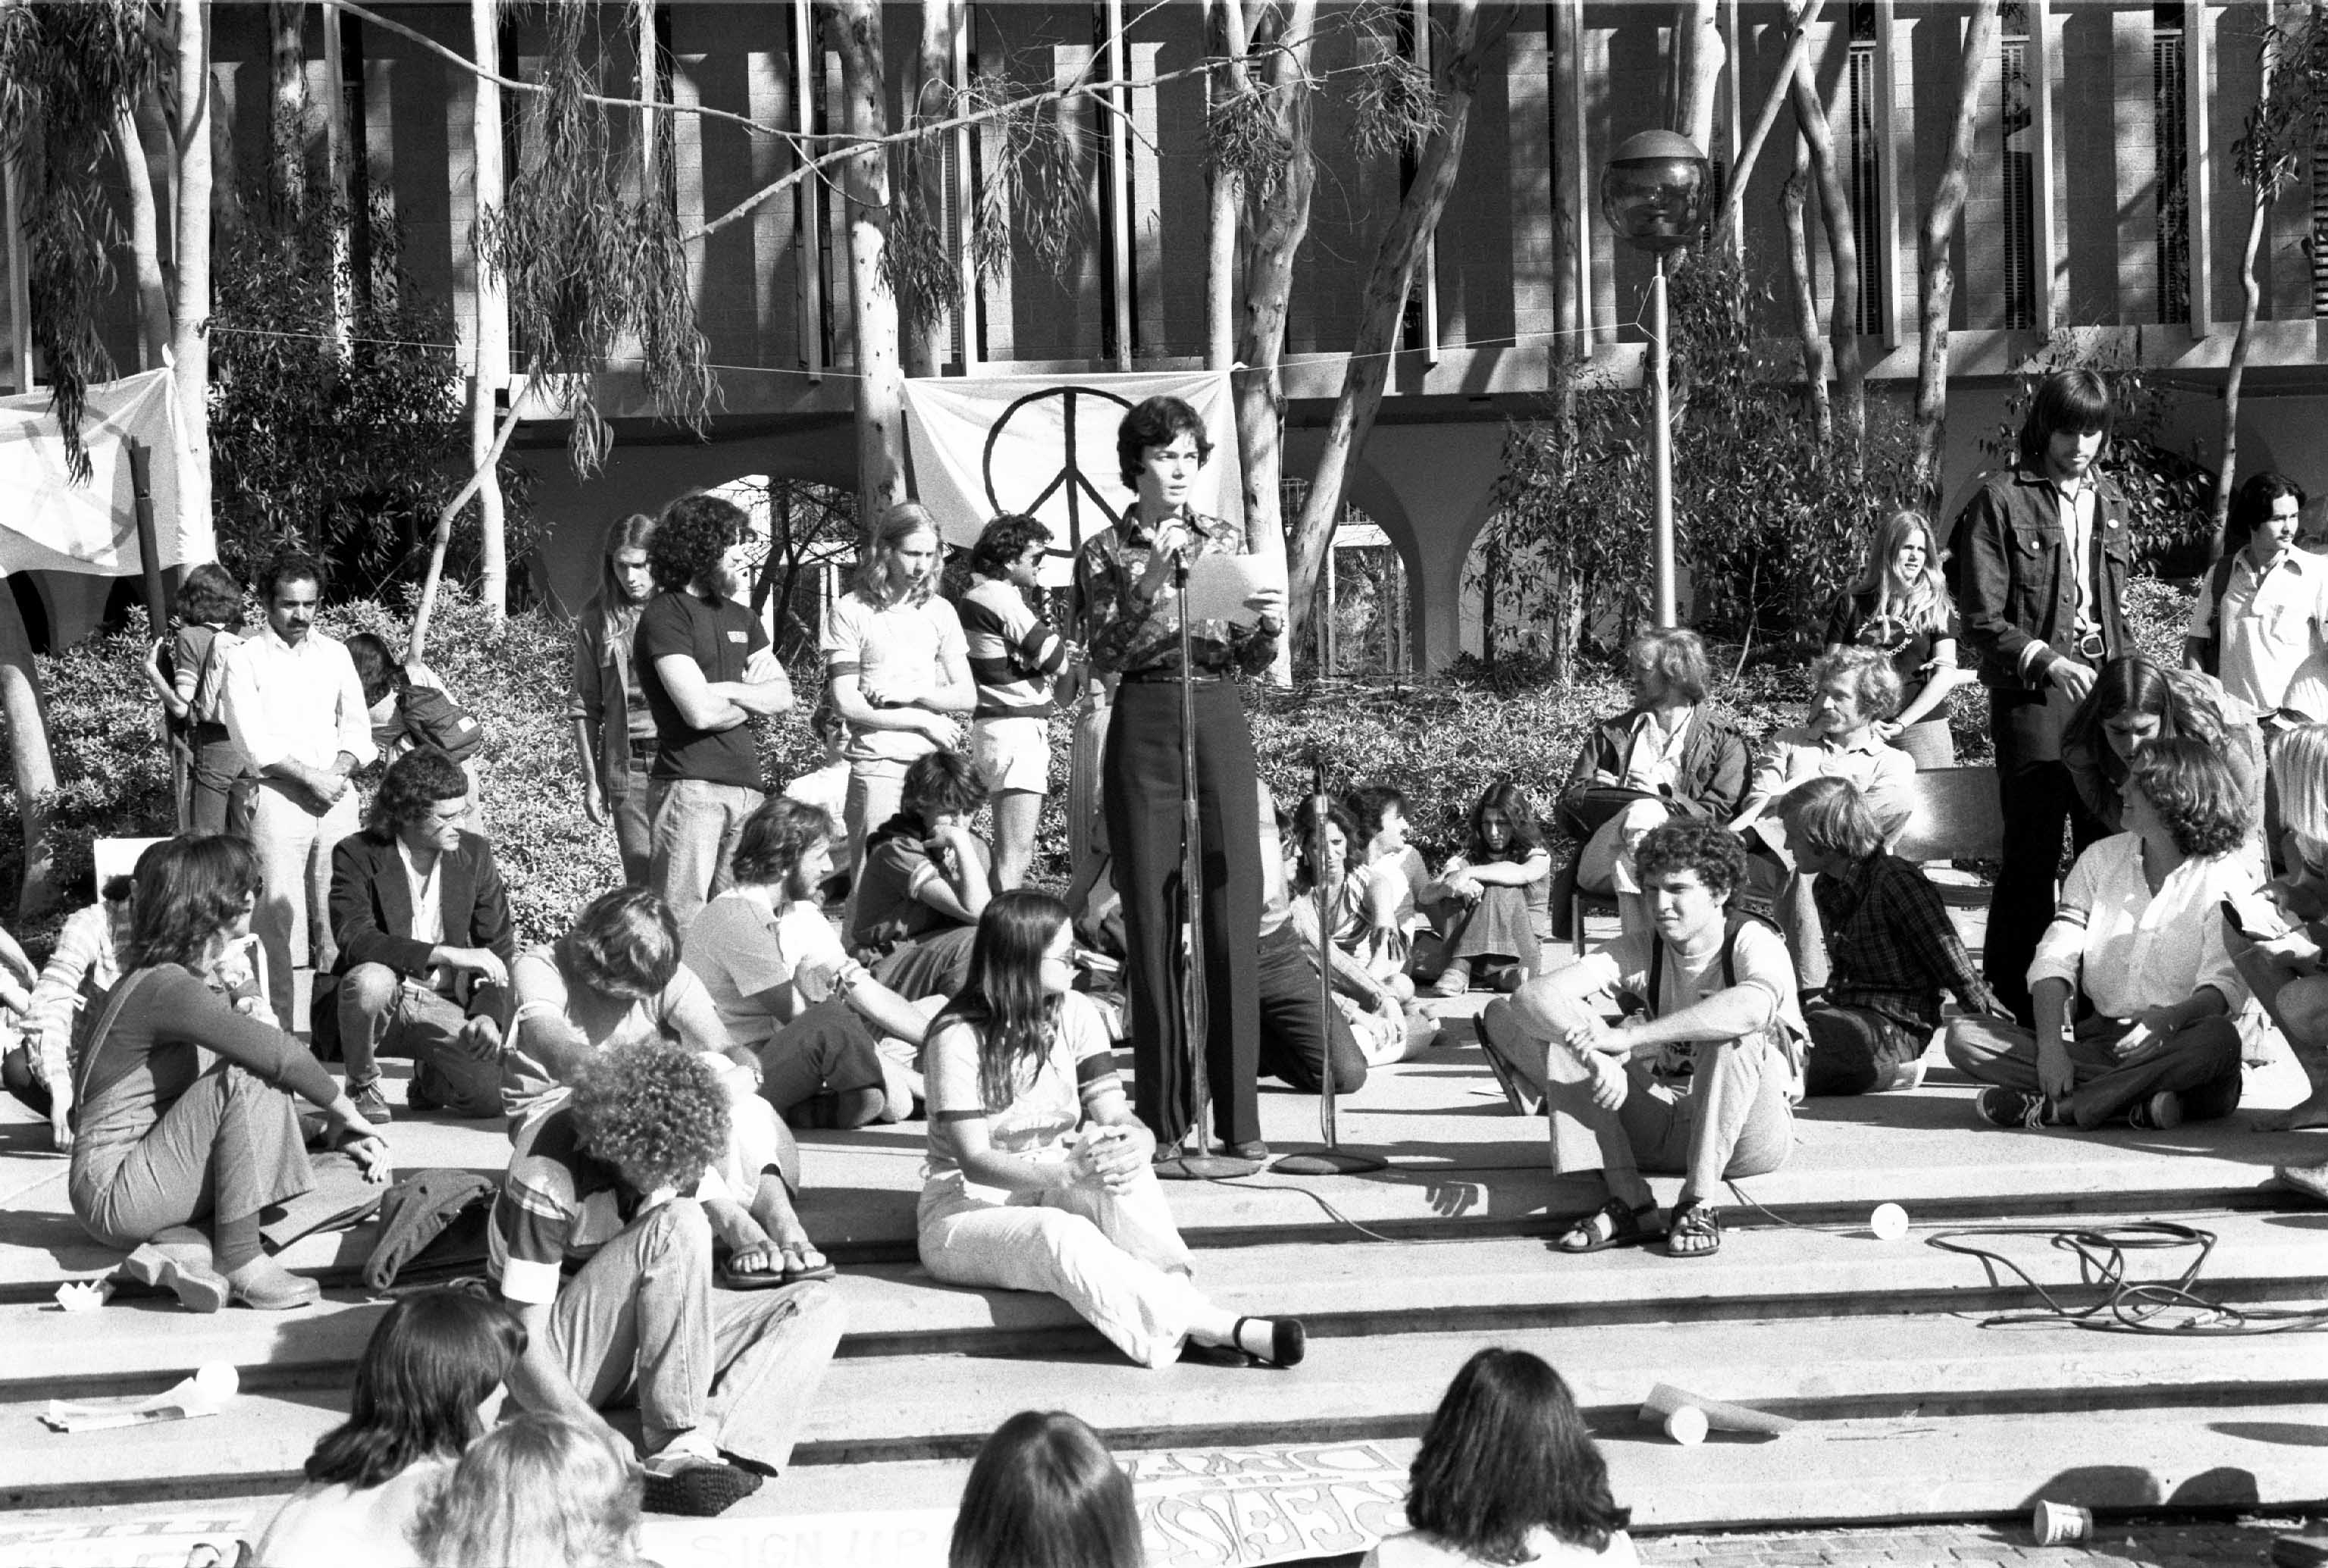 [Image 1. Anti war protests at the University of California, San Diego, 1970. Credits: Fred Lonidier]